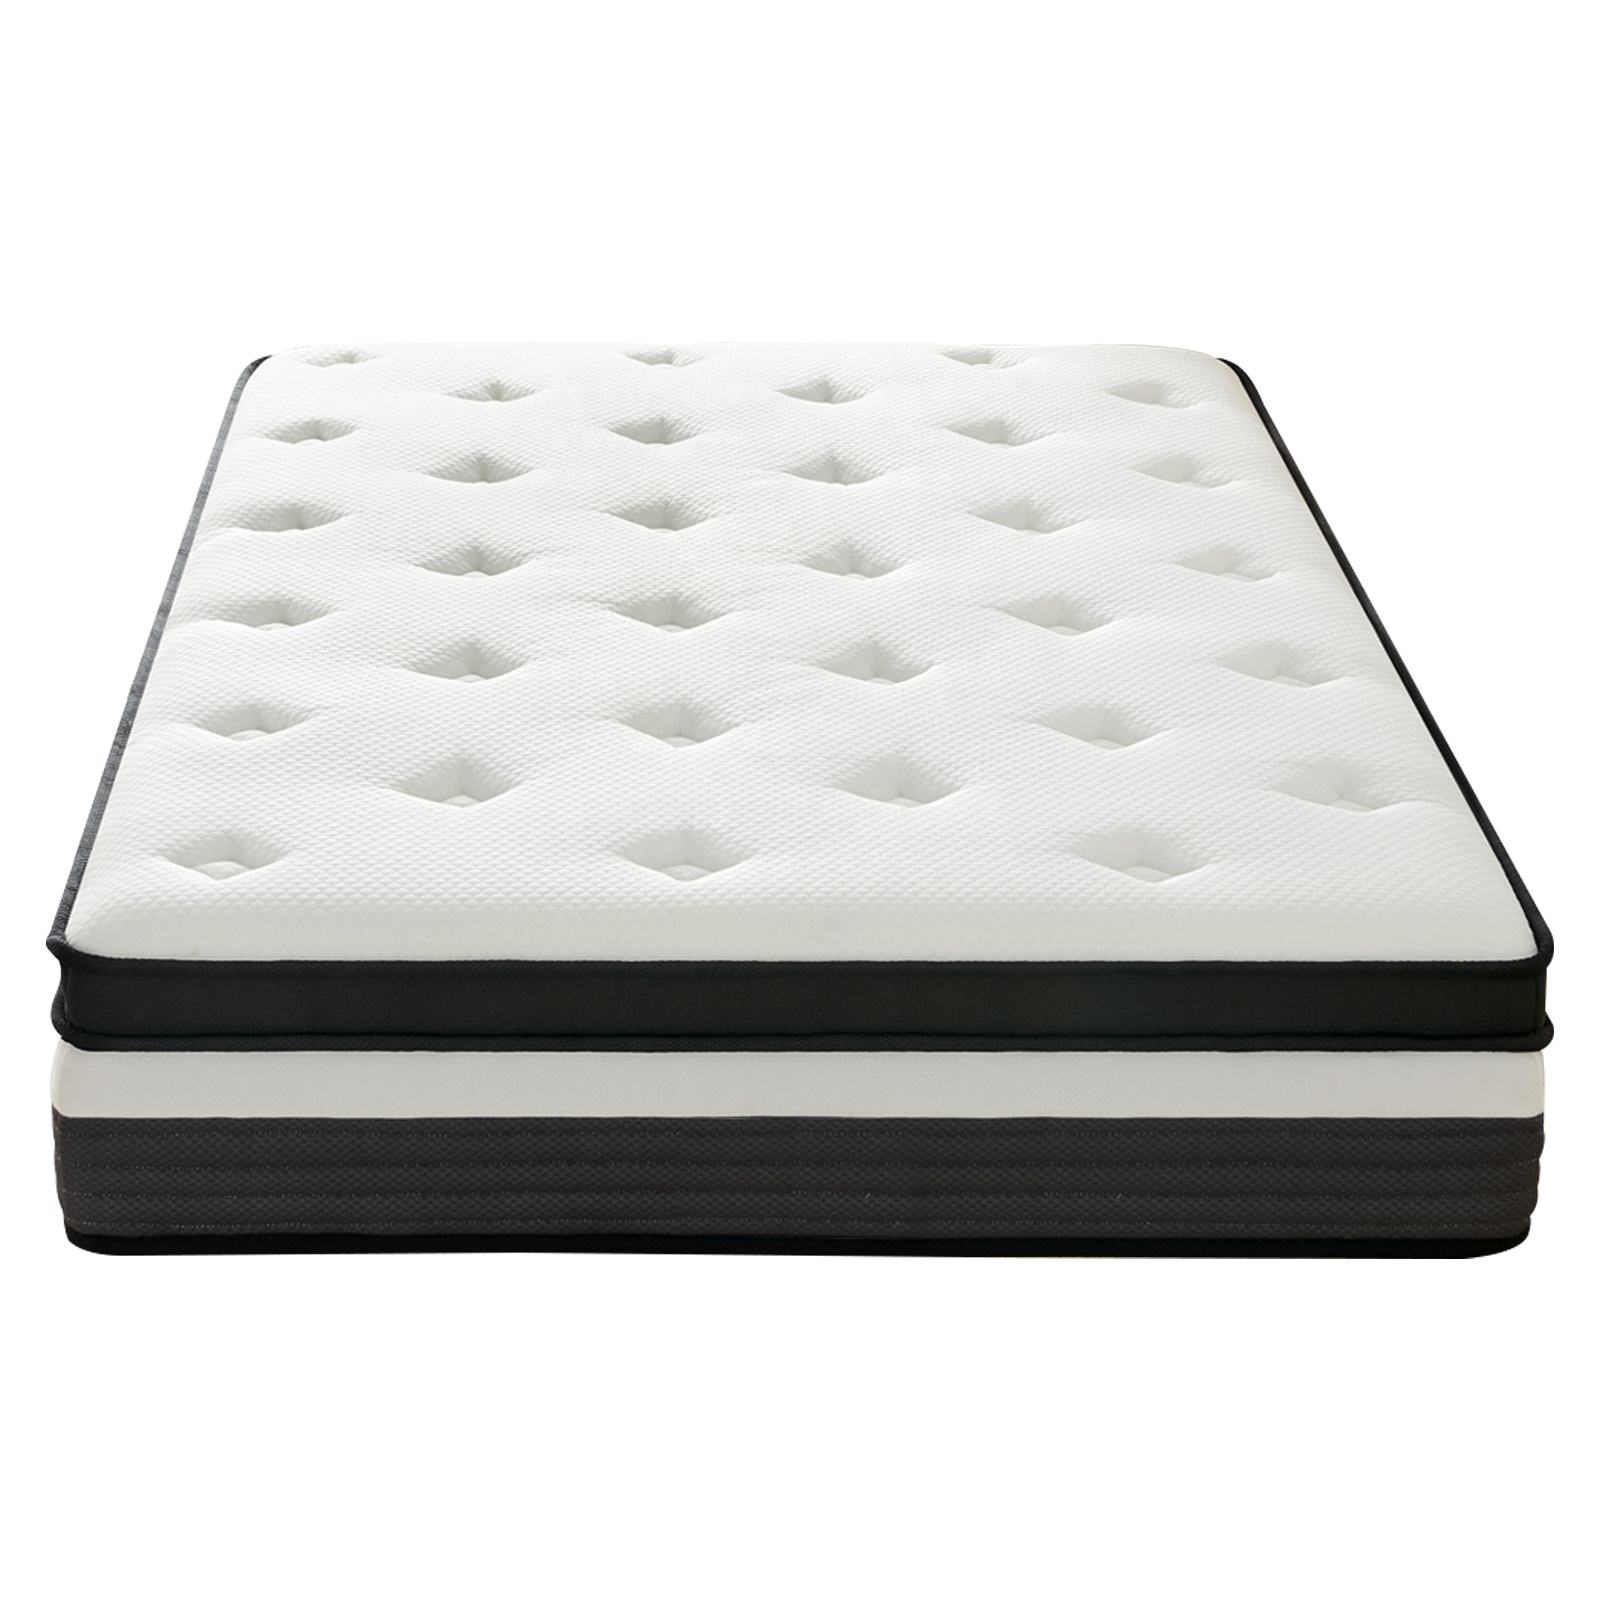 Tight top memory foam 5 star hotel spring bed mattress wholesale suppliers